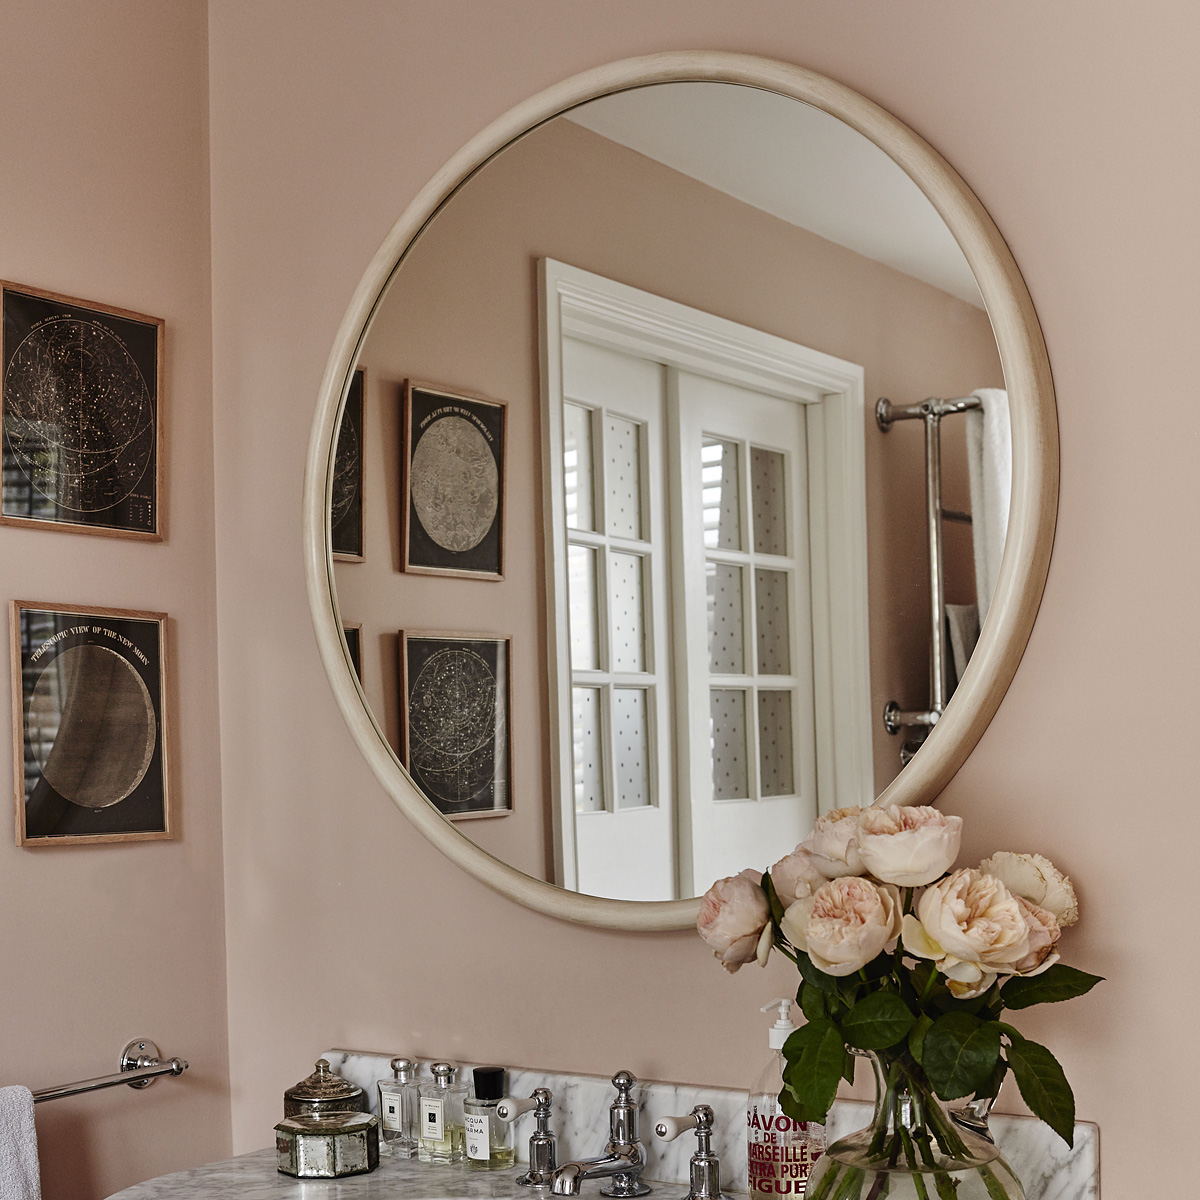 Reid & Wright plain mirror